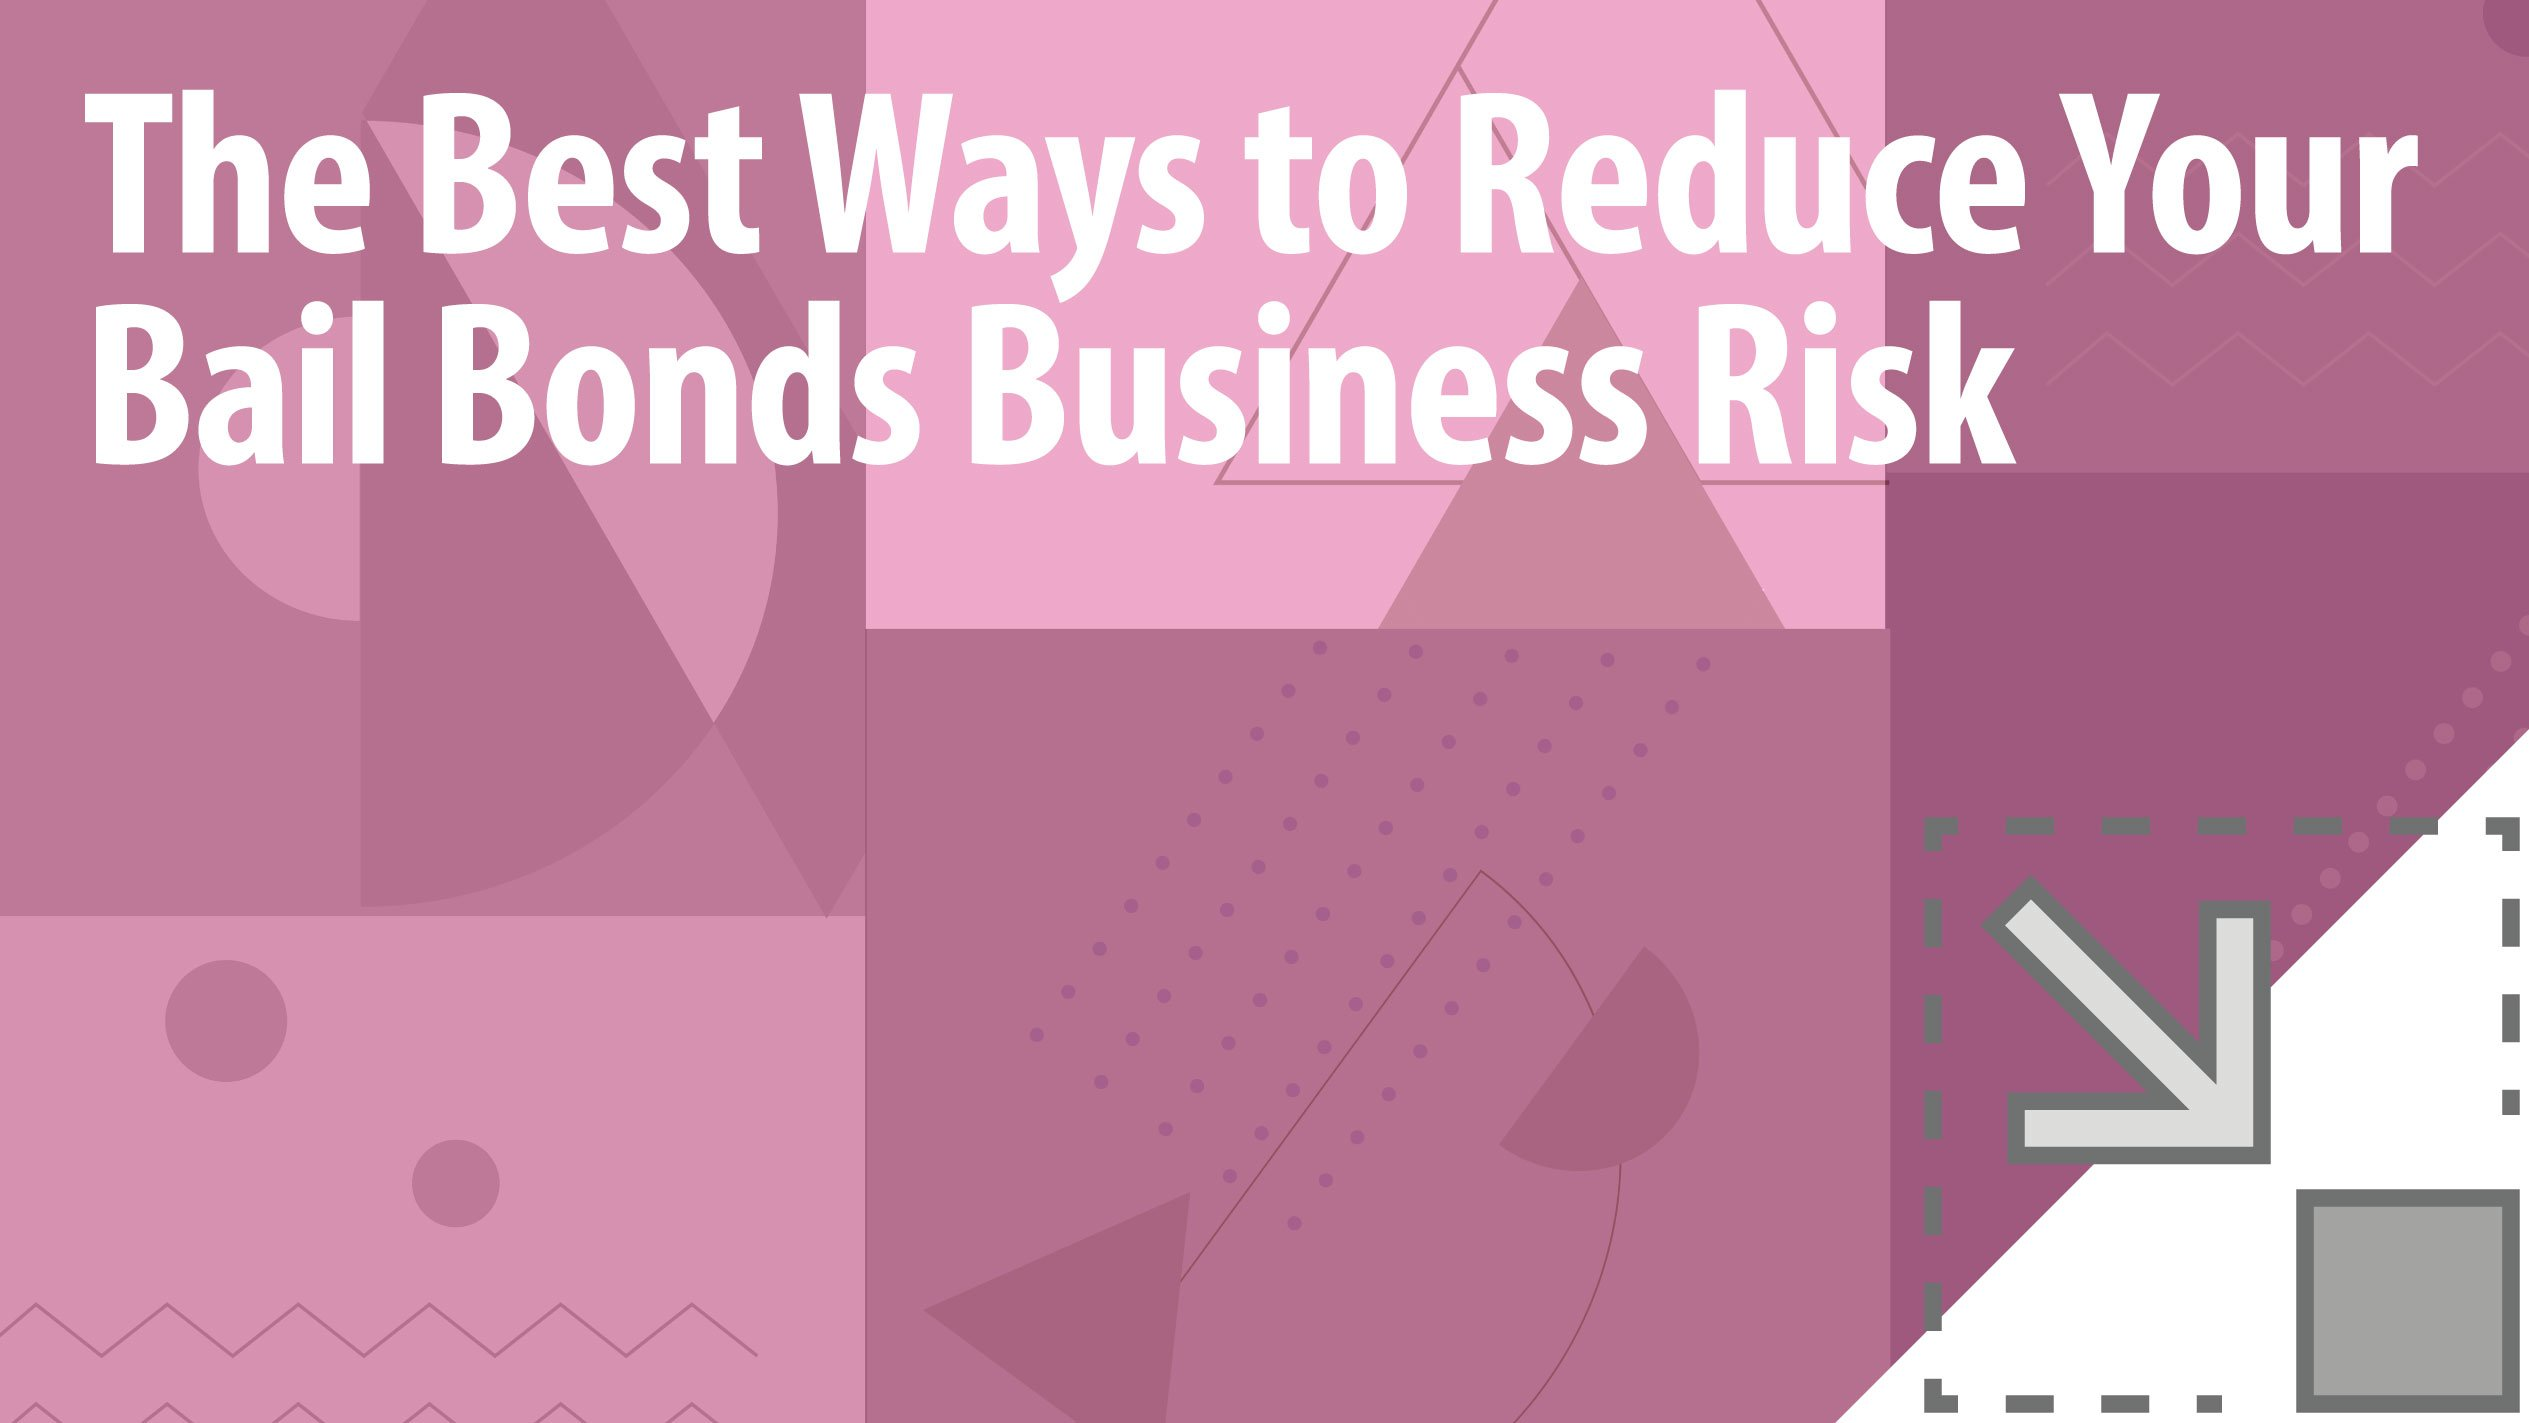 The Best Ways to Reduce Your Bail Bond's Business Risk